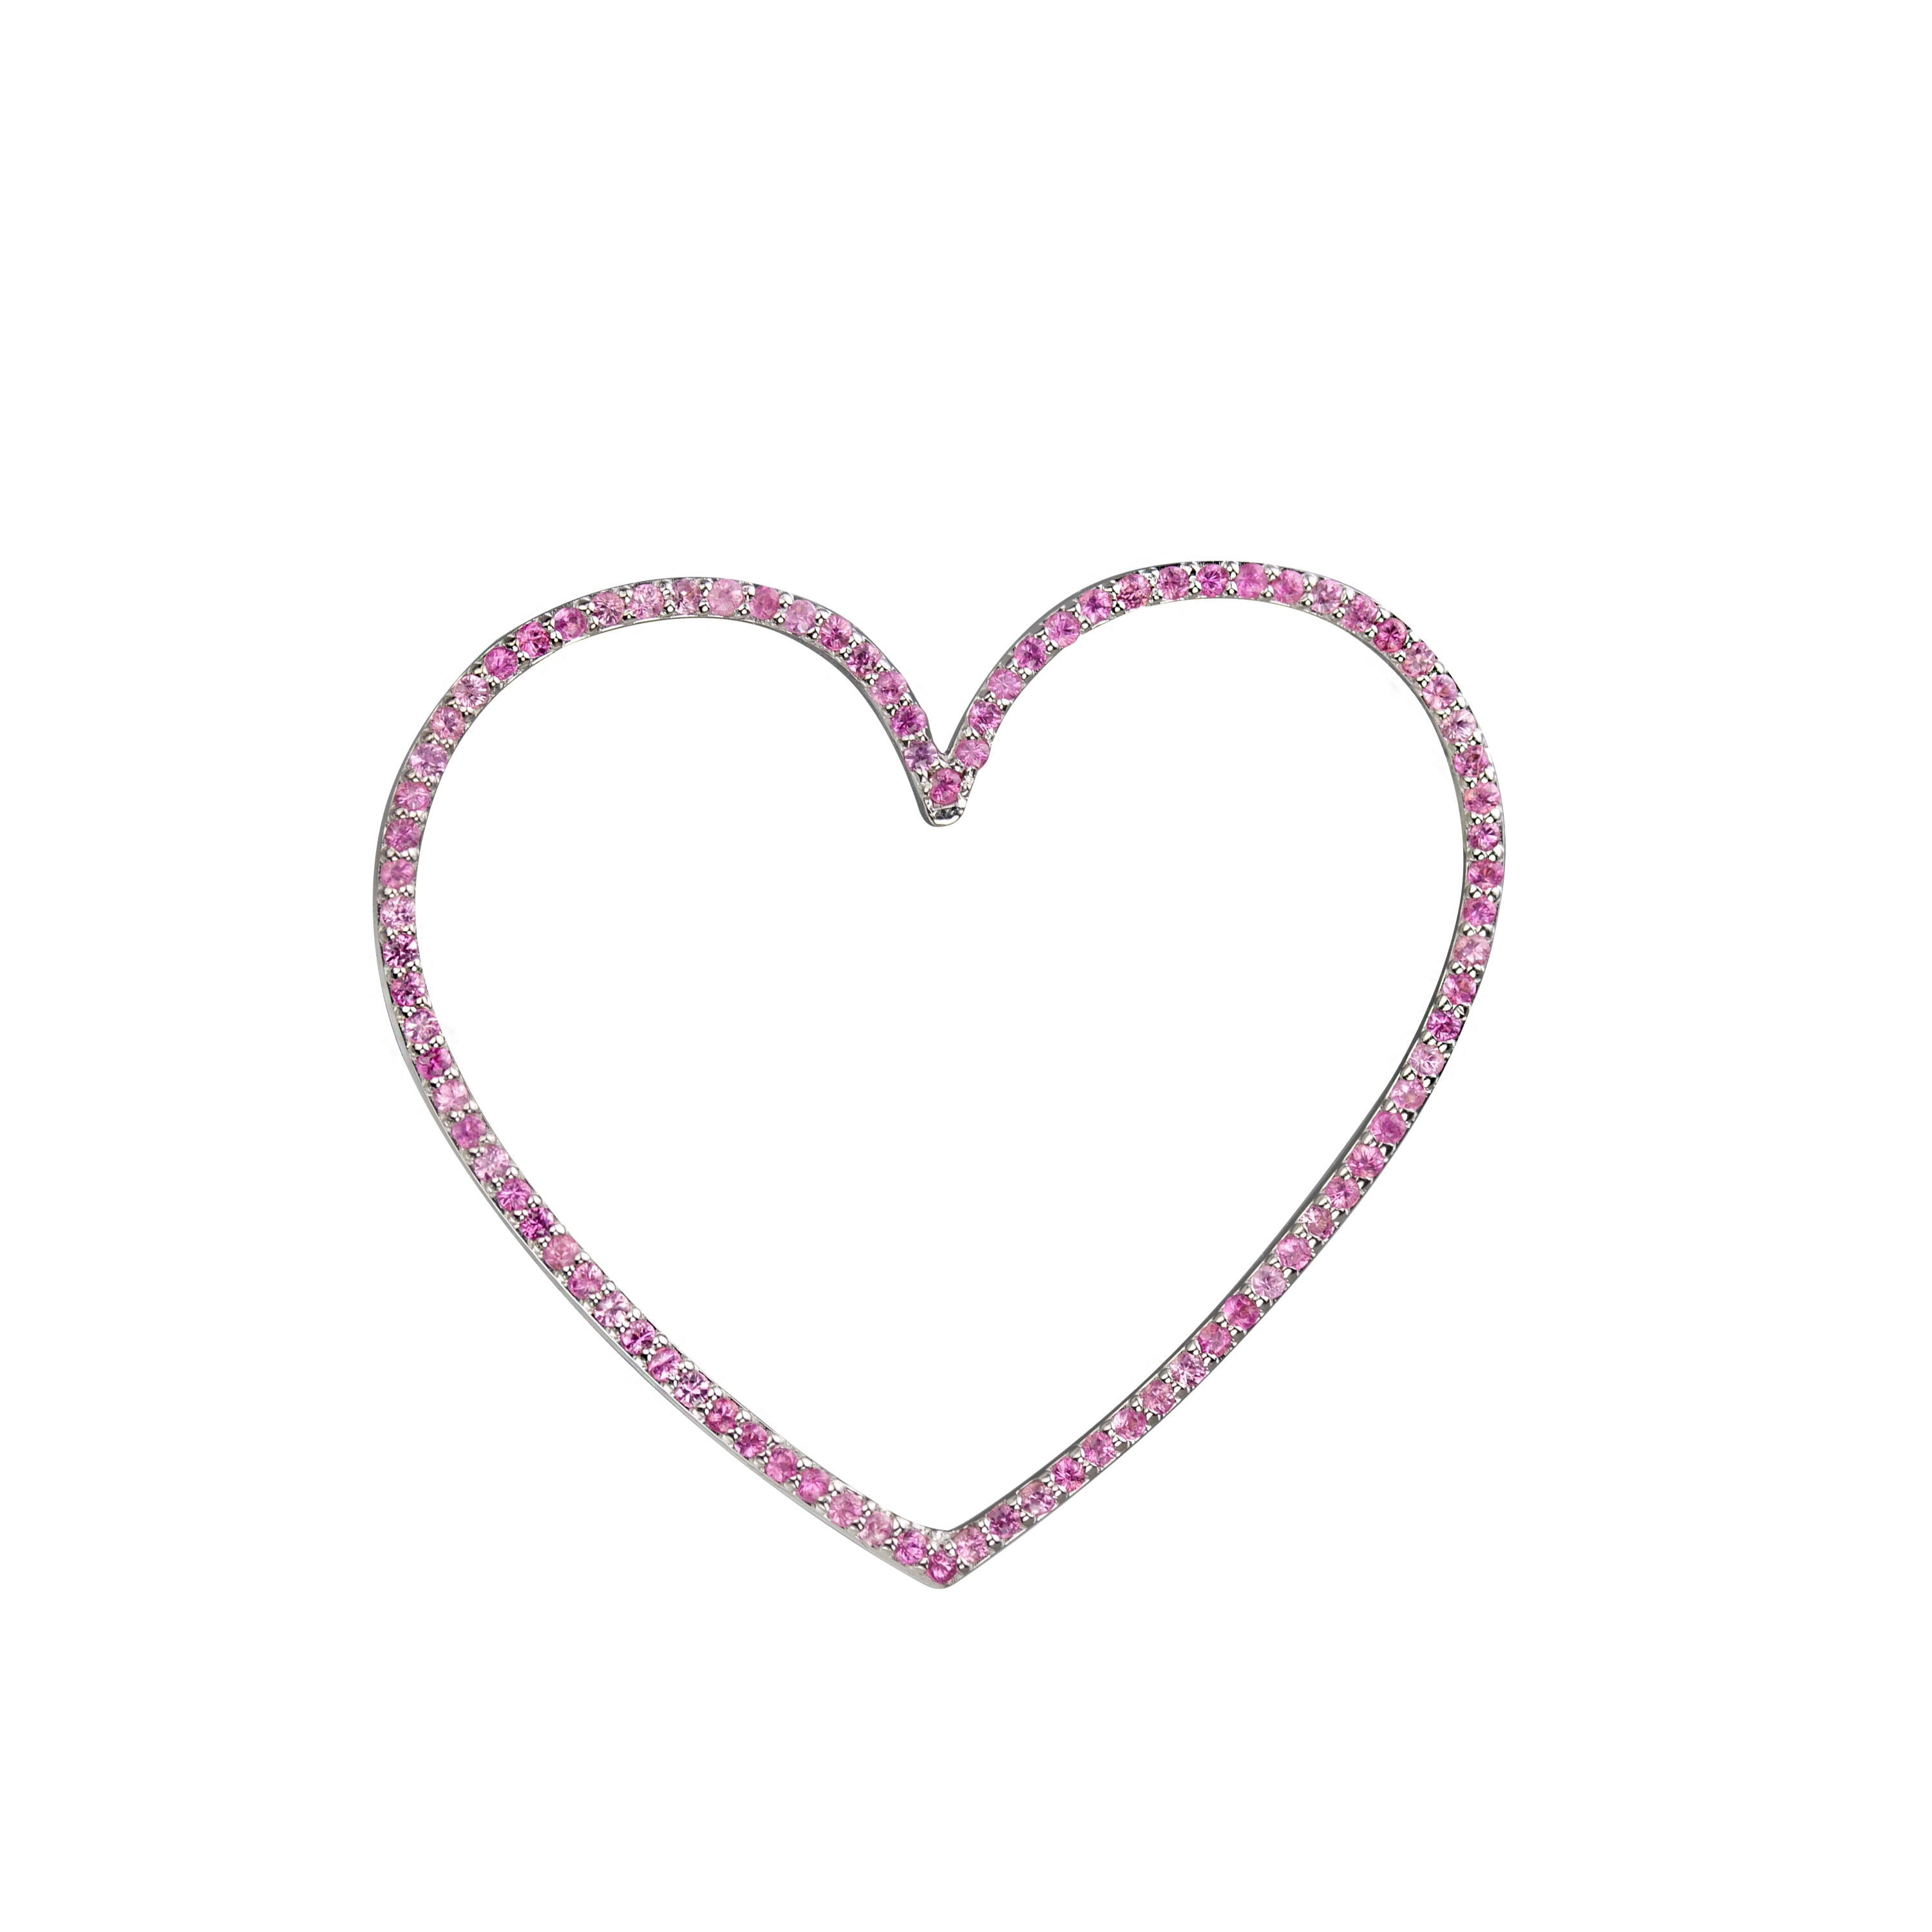 Heart charm large pink sapphire in white gold, or amethyst, blue topaz, citrine, emerald, ruby, rainbow or black diamonds